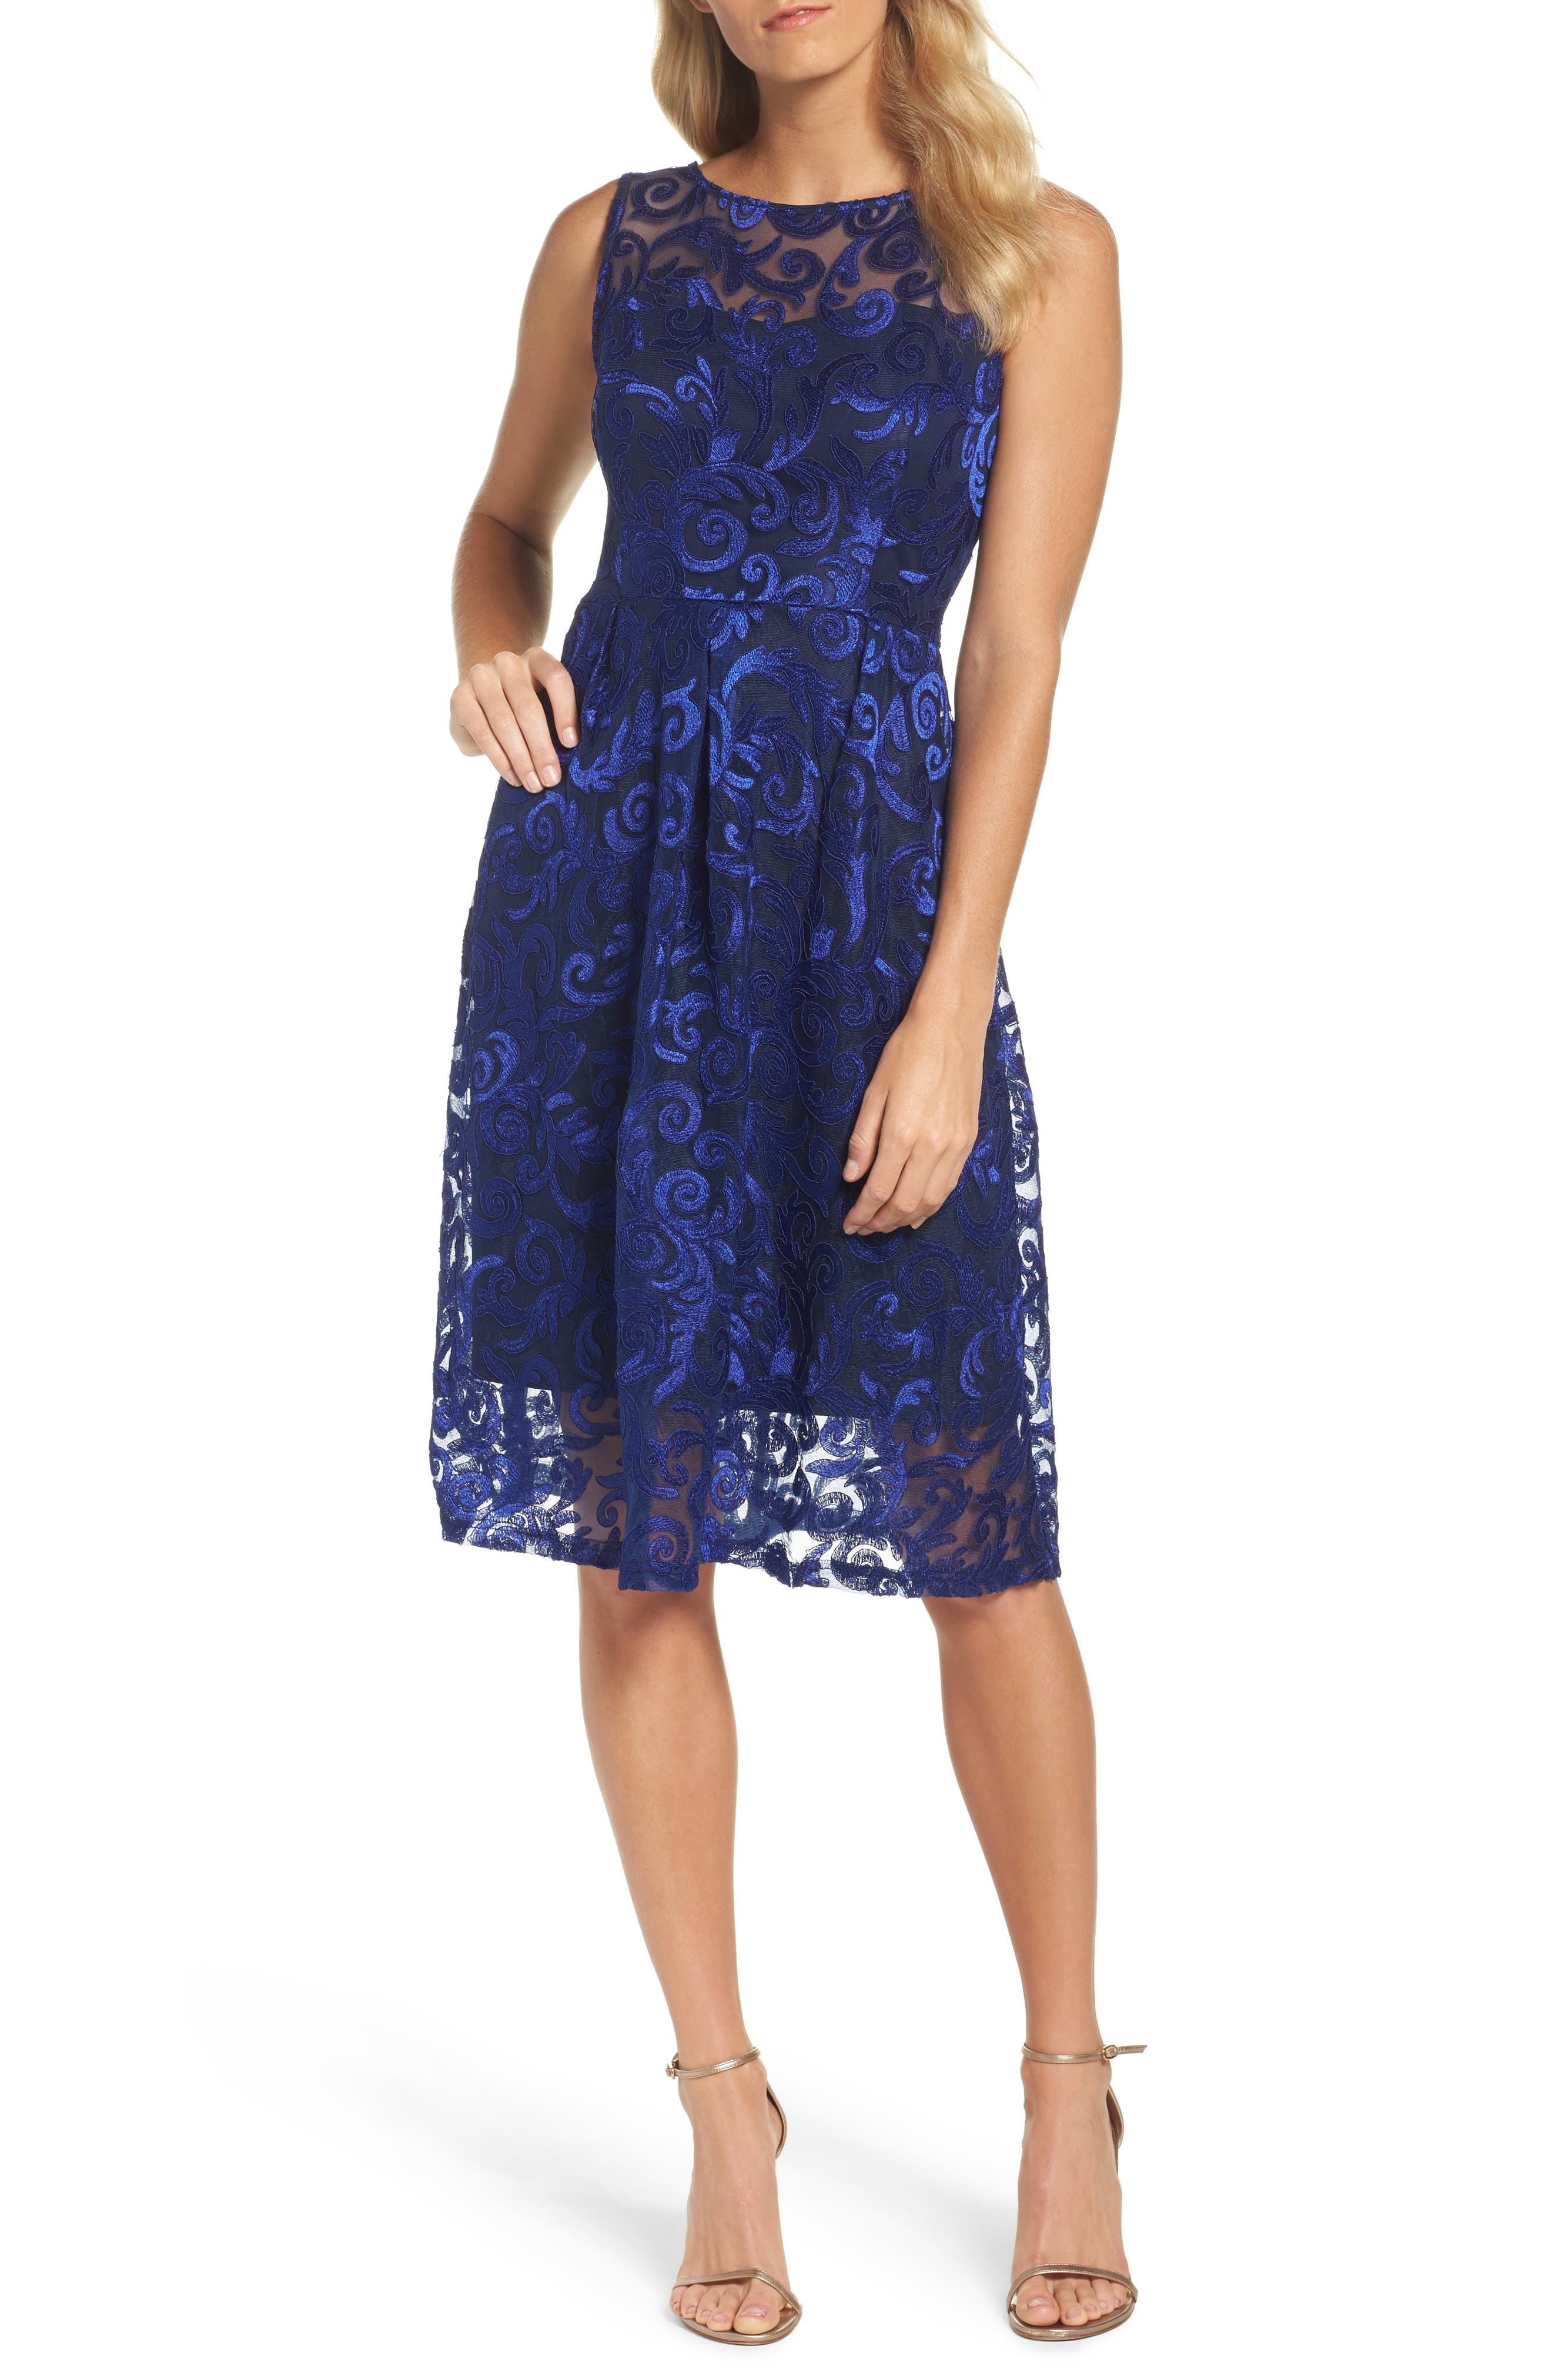 Floral Scroll Embroidered Cocktail Dress,                             Main thumbnail 1, color,                             430